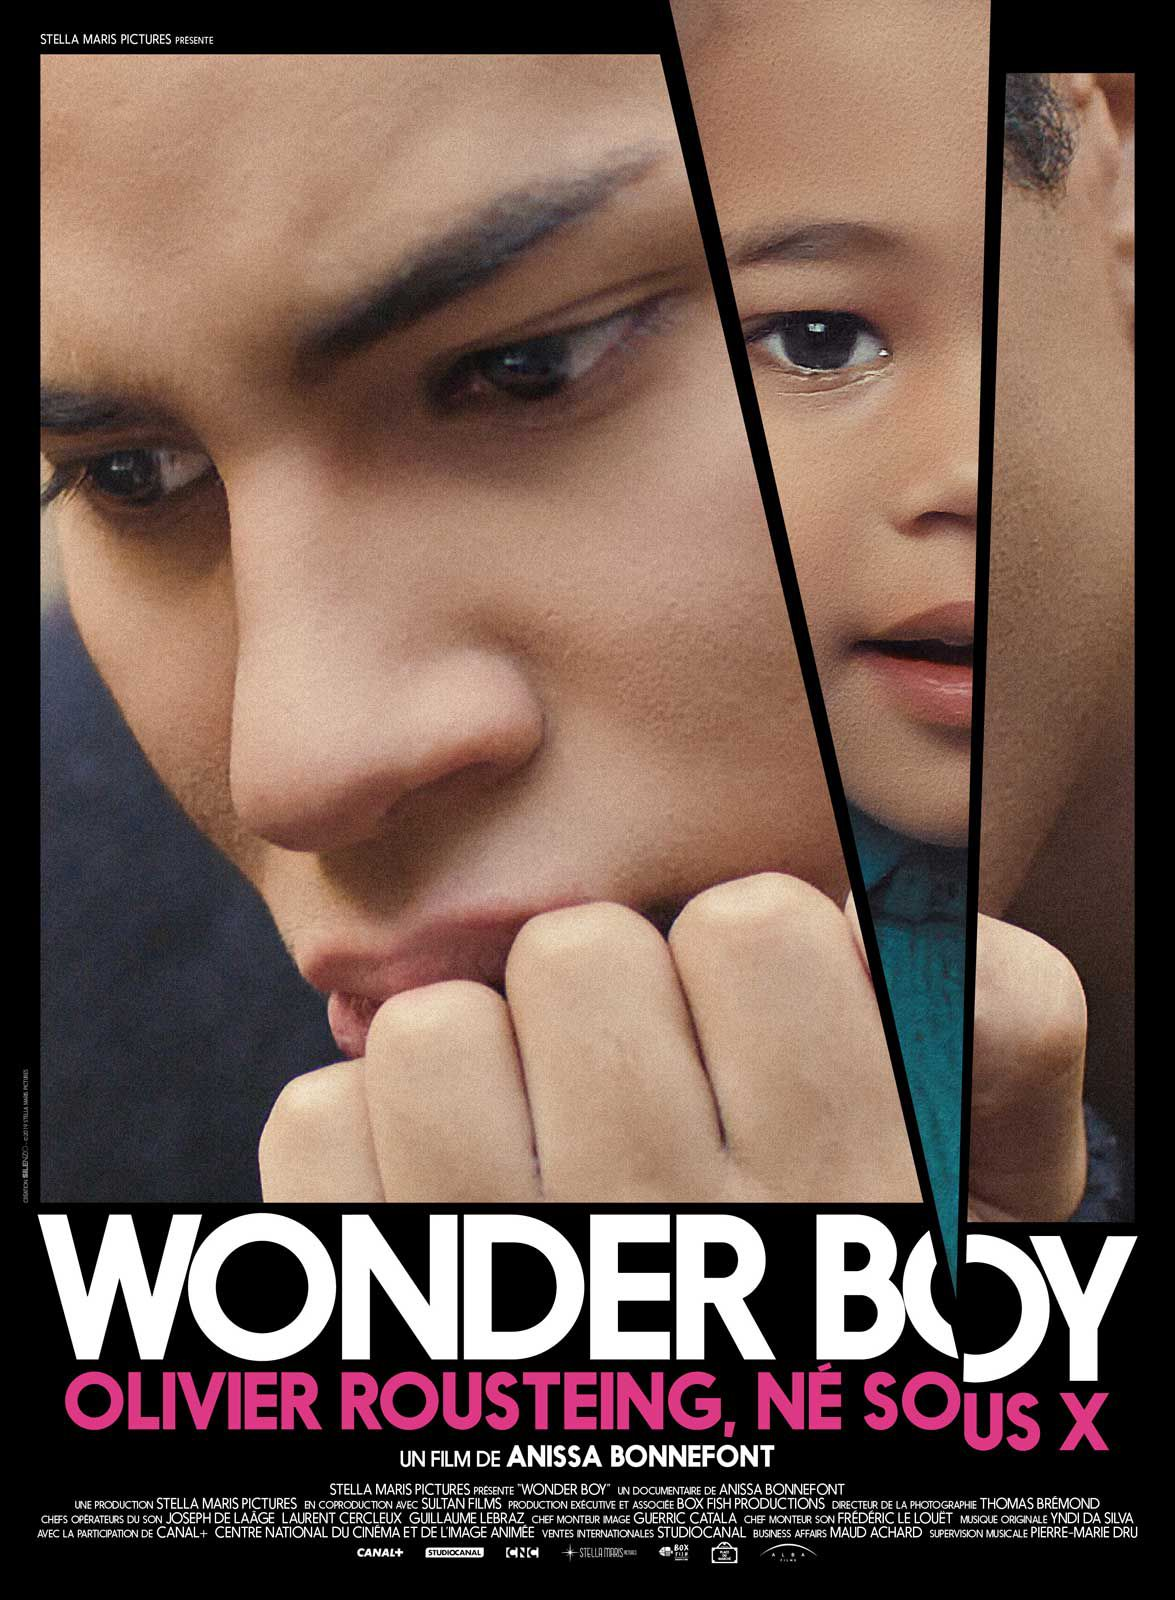 Wonder Boy, Olivier Rousteing, né sous X - Documentaire (2019)